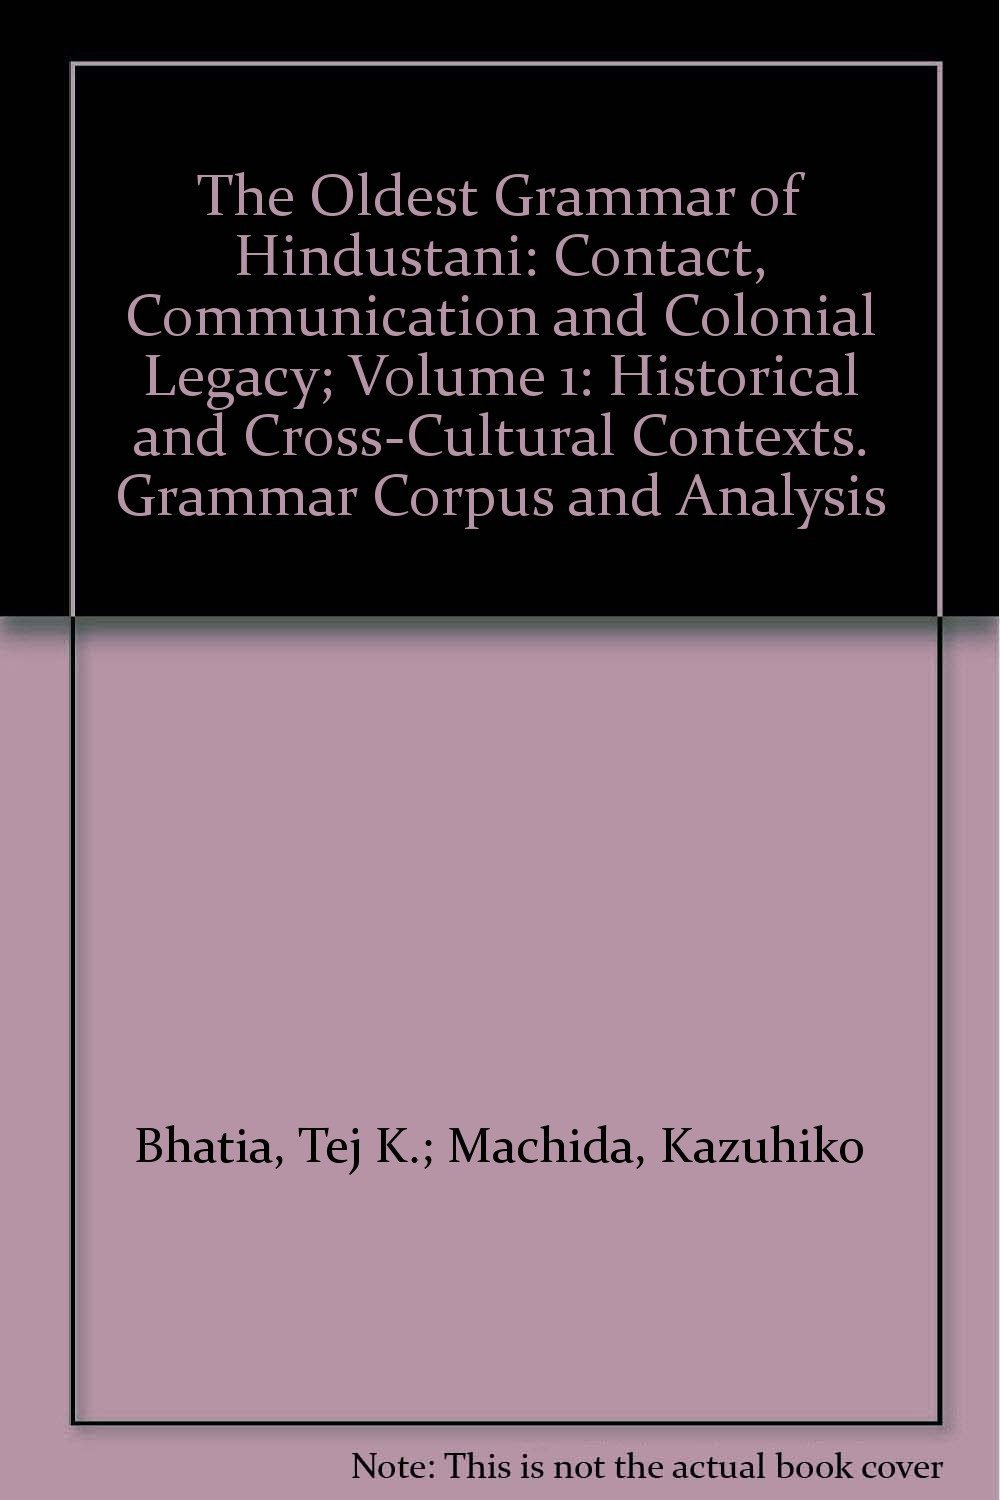 The Oldest Grammar of Hindustani: Contact, Communication and Colonial Legacy; Volume 1: Historical and Cross-Cultural Contexts. Grammar Corpus and Analysis